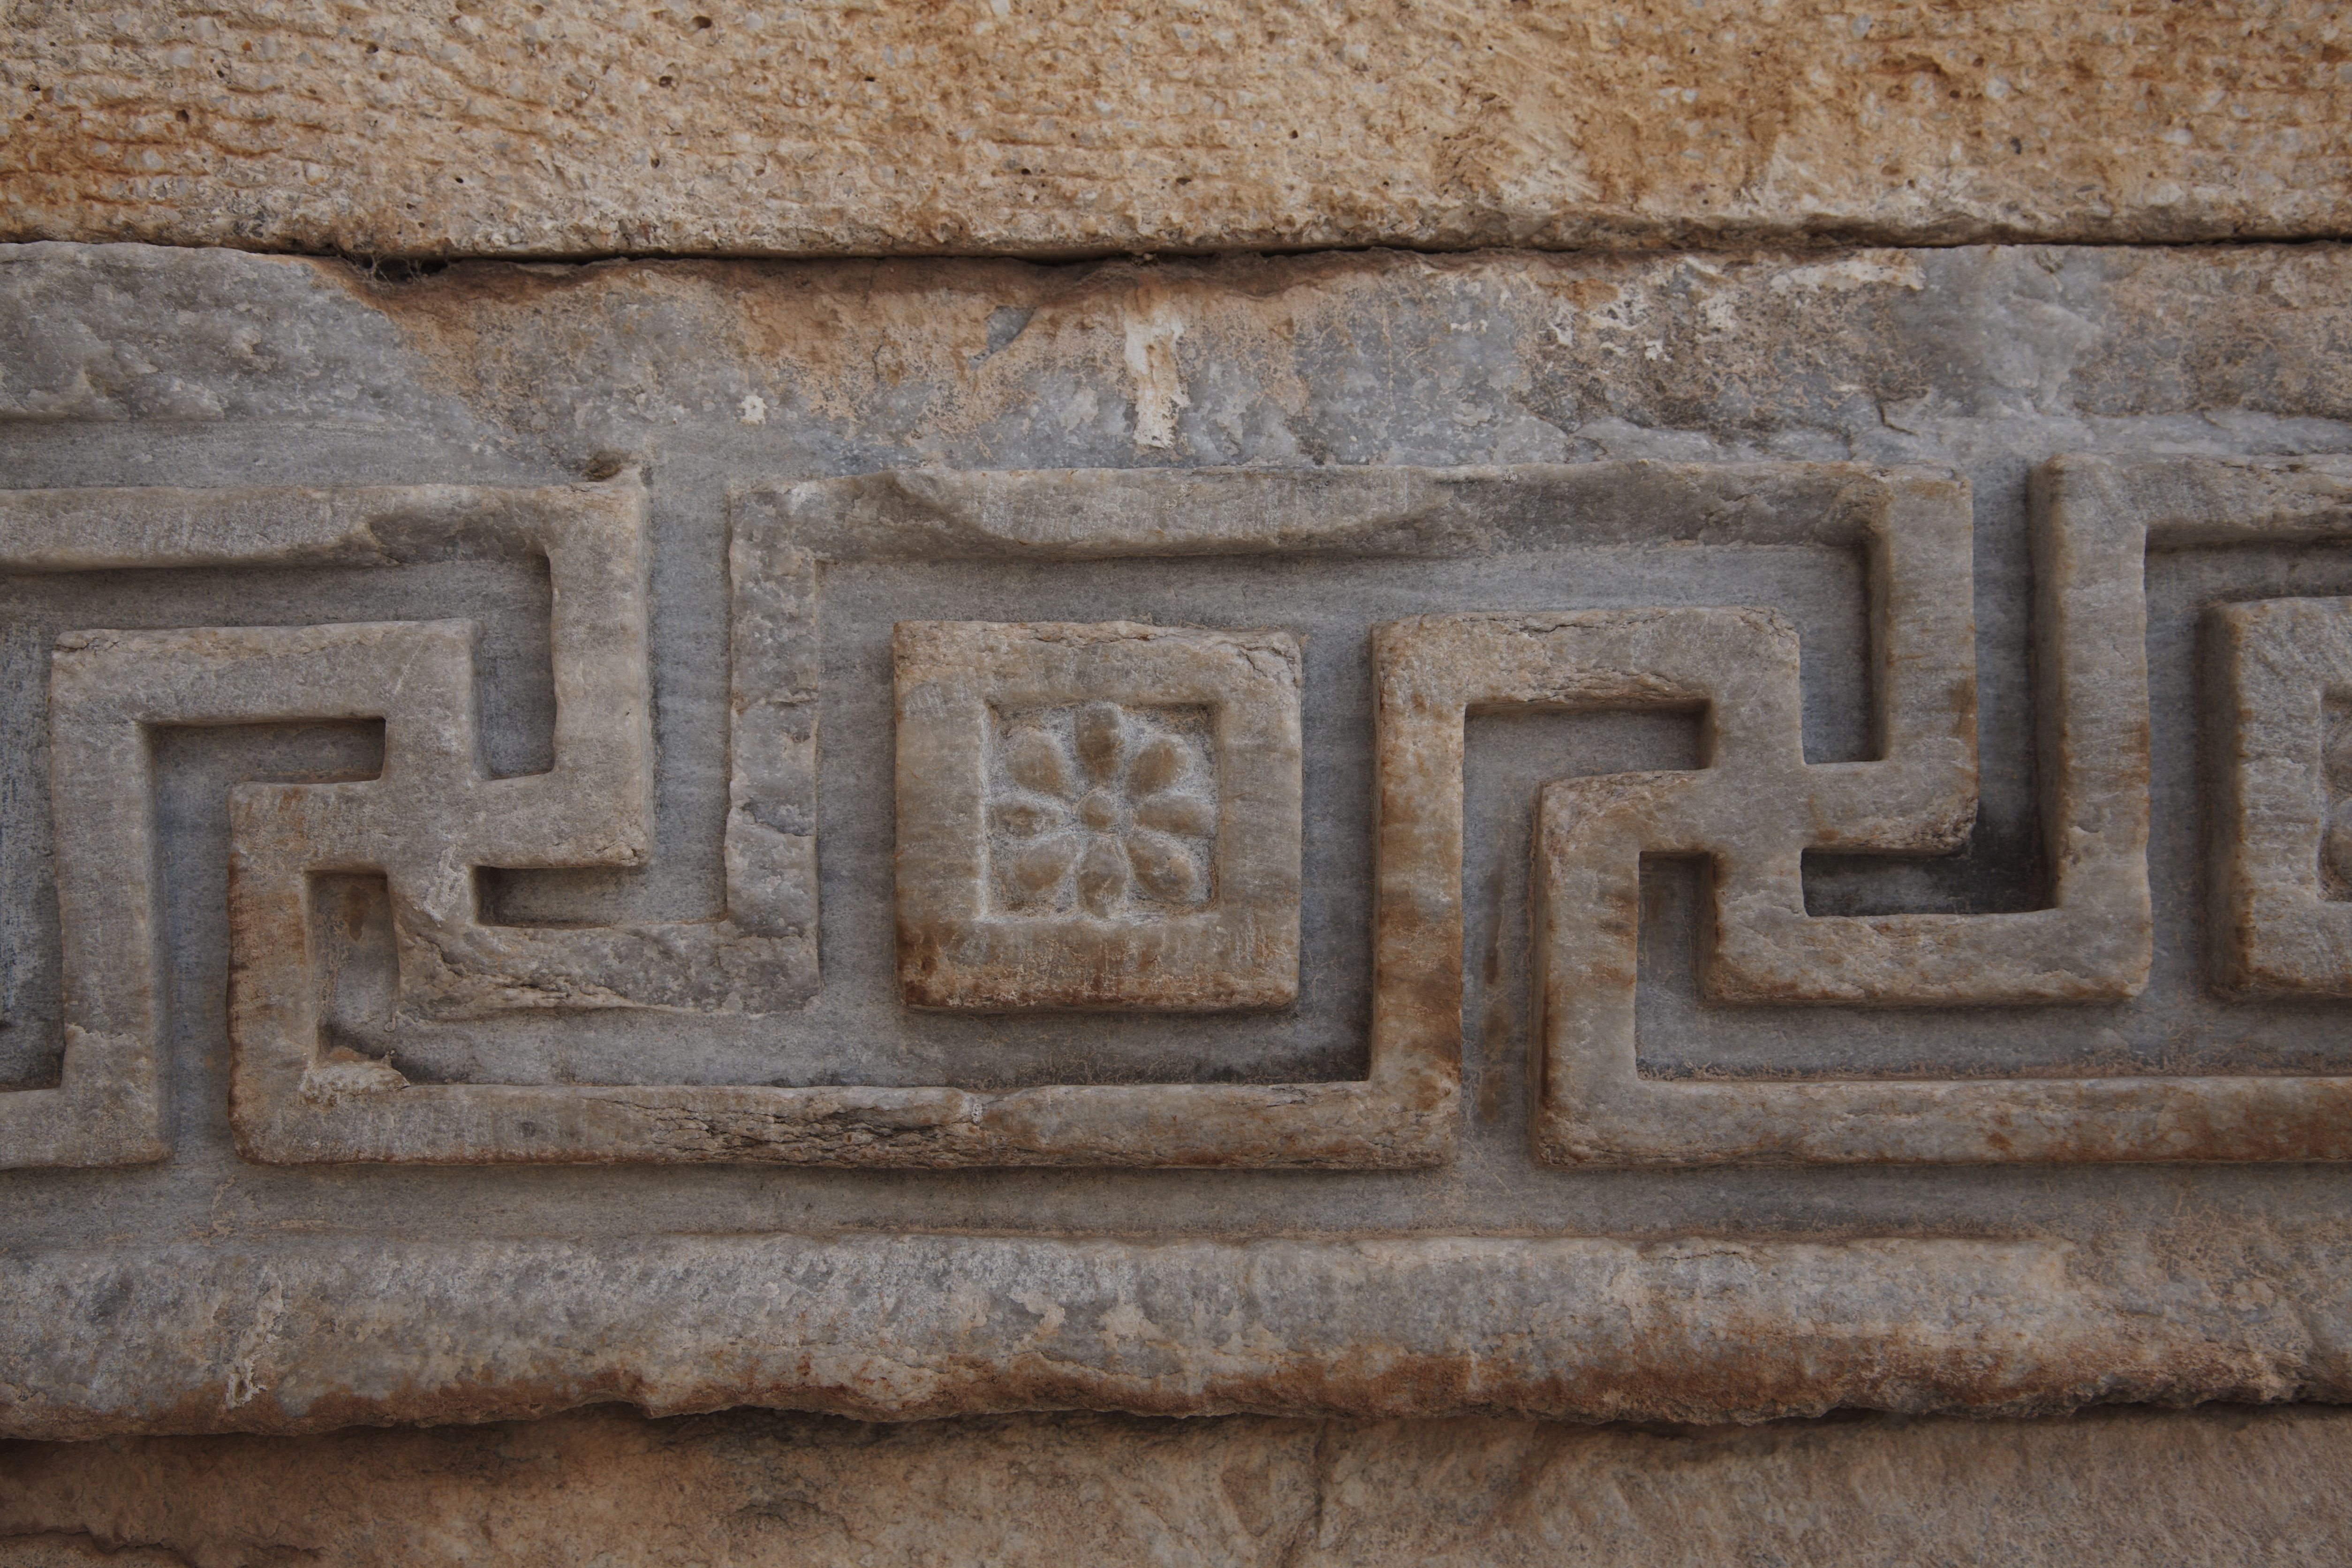 Carved swastika patterns in The Temple of Hadrian, Turkey.